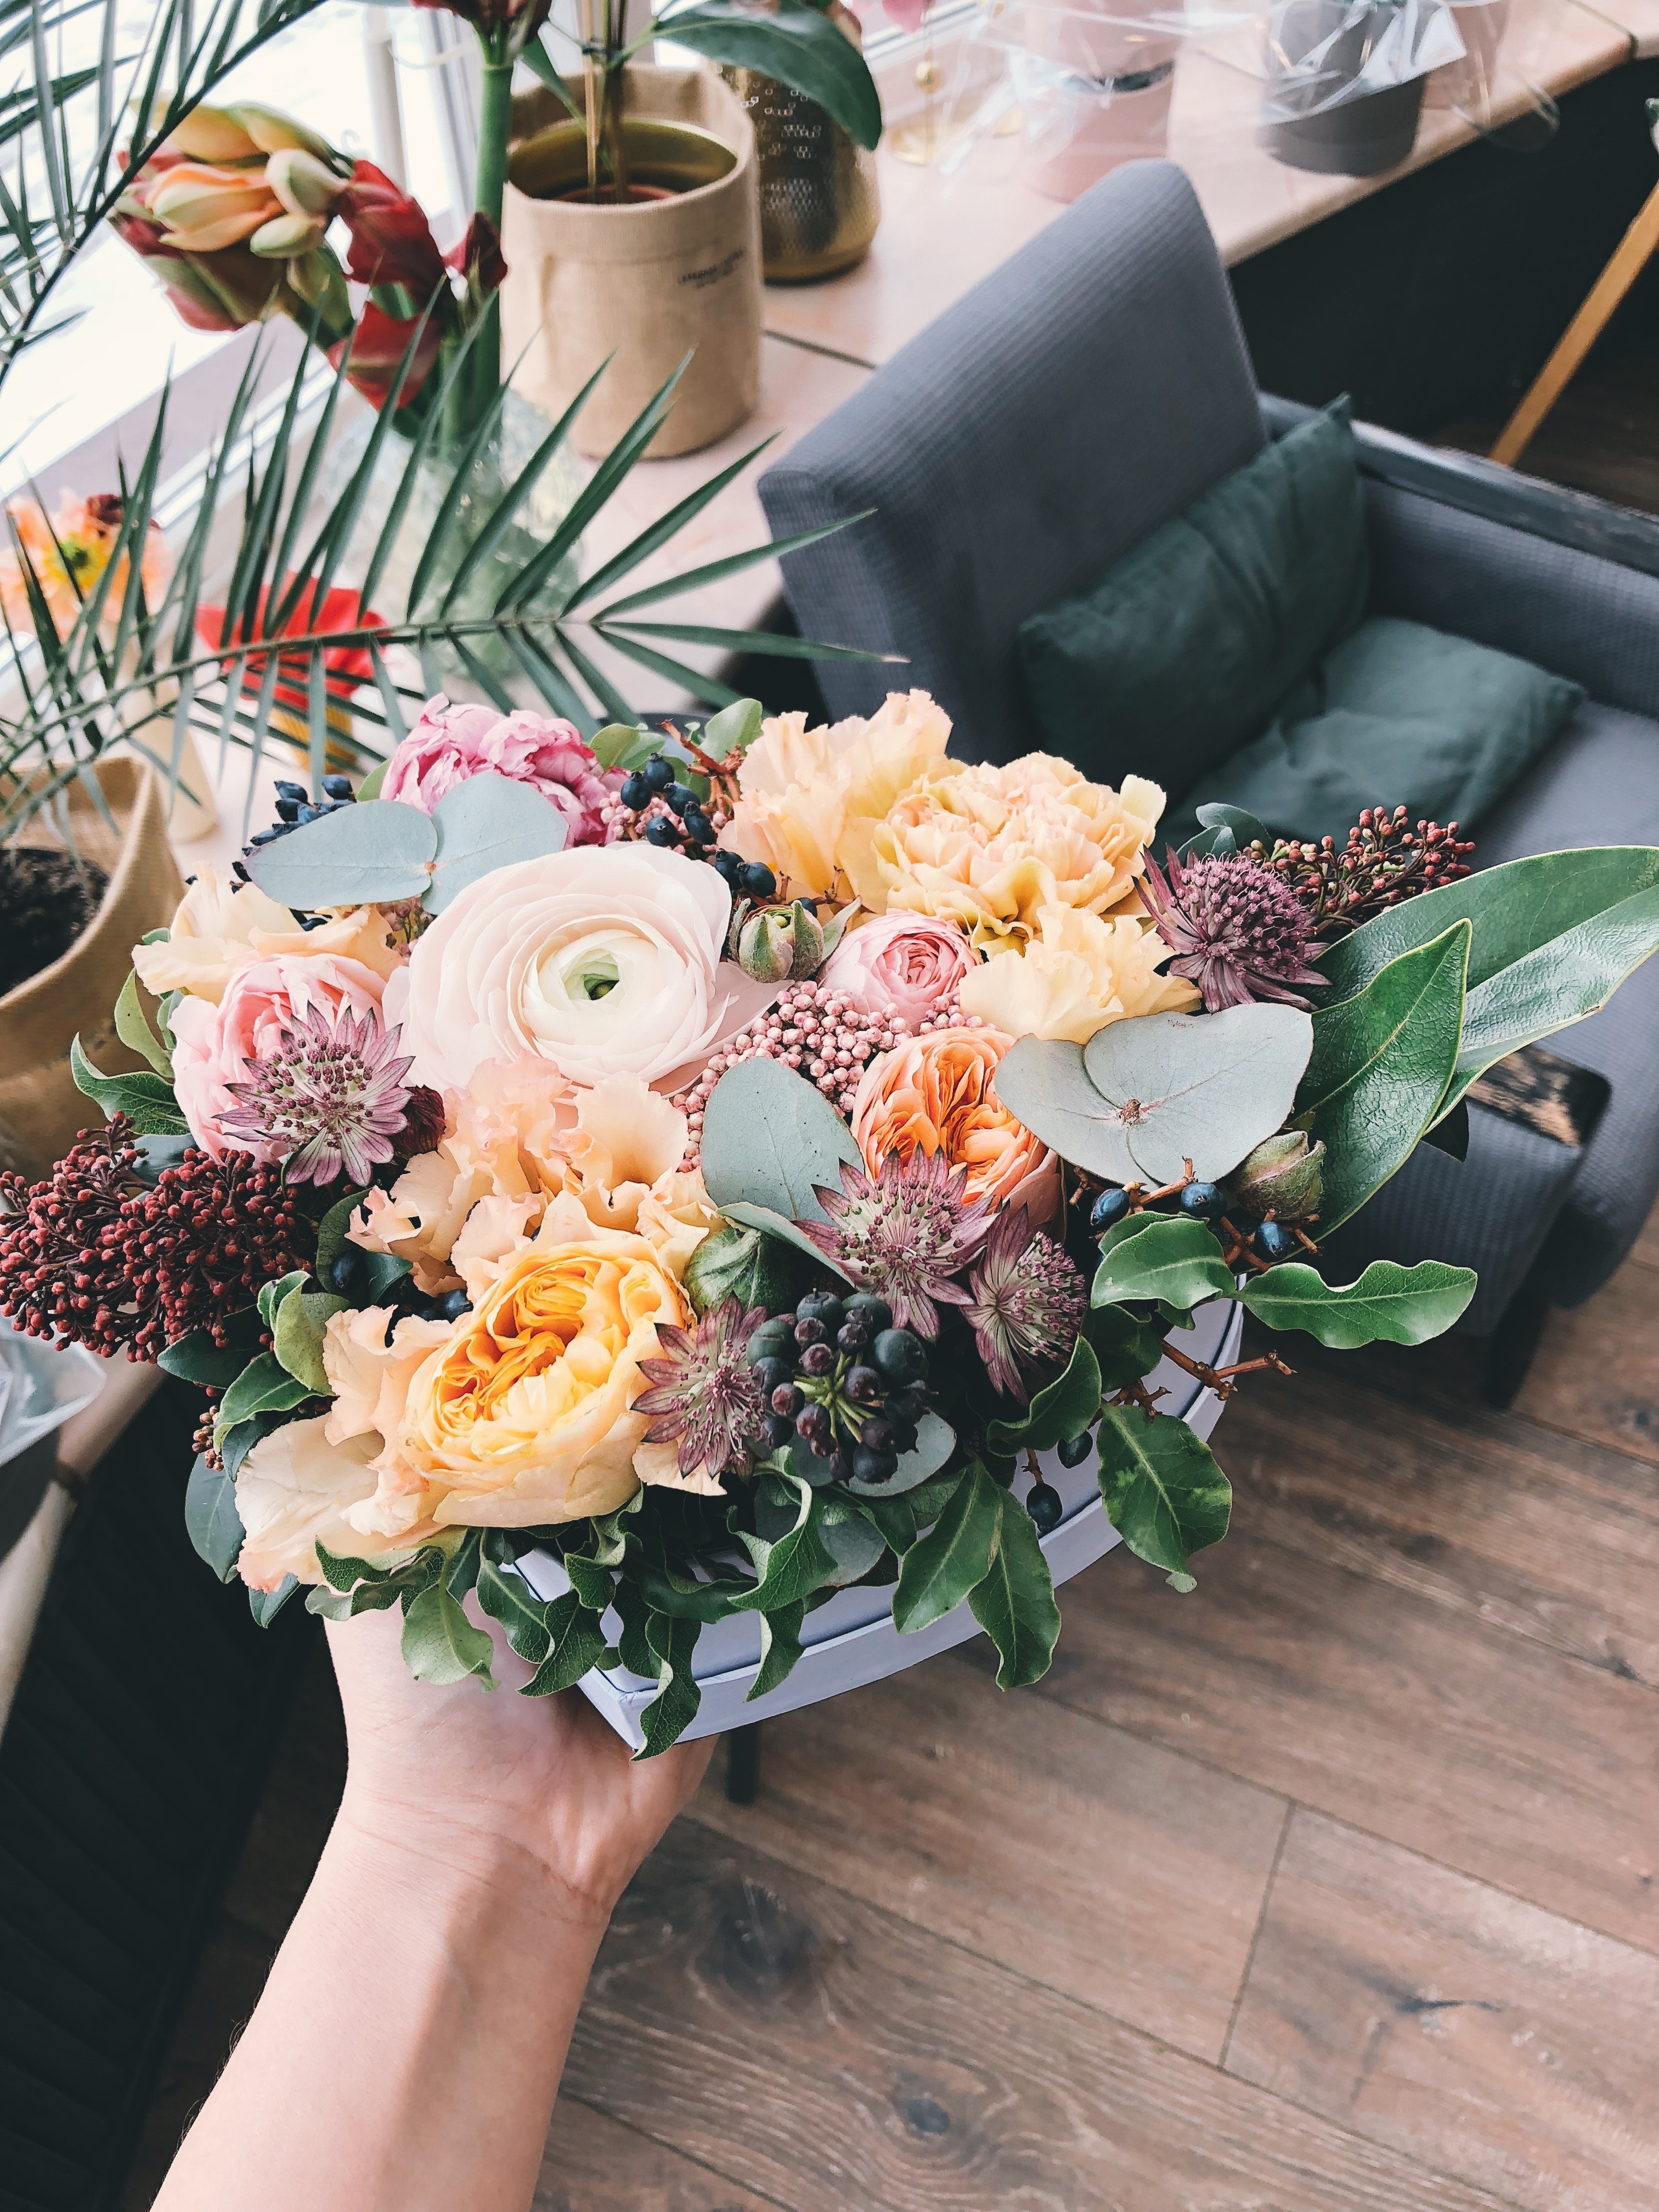 Assorted-color Flower Bouquet · Free Stock Photo